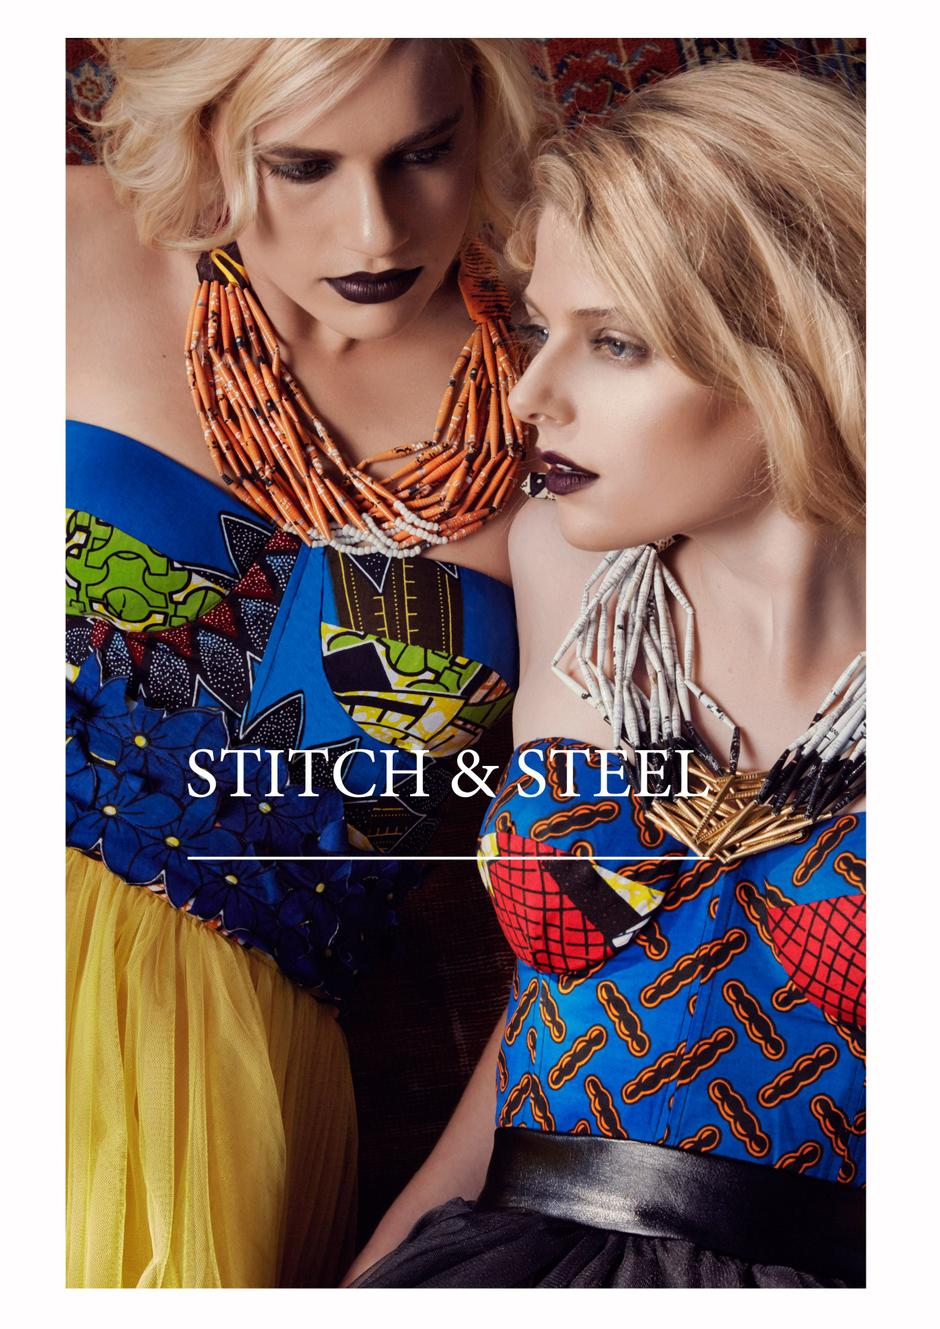 Stitch & Steel Stand Out!